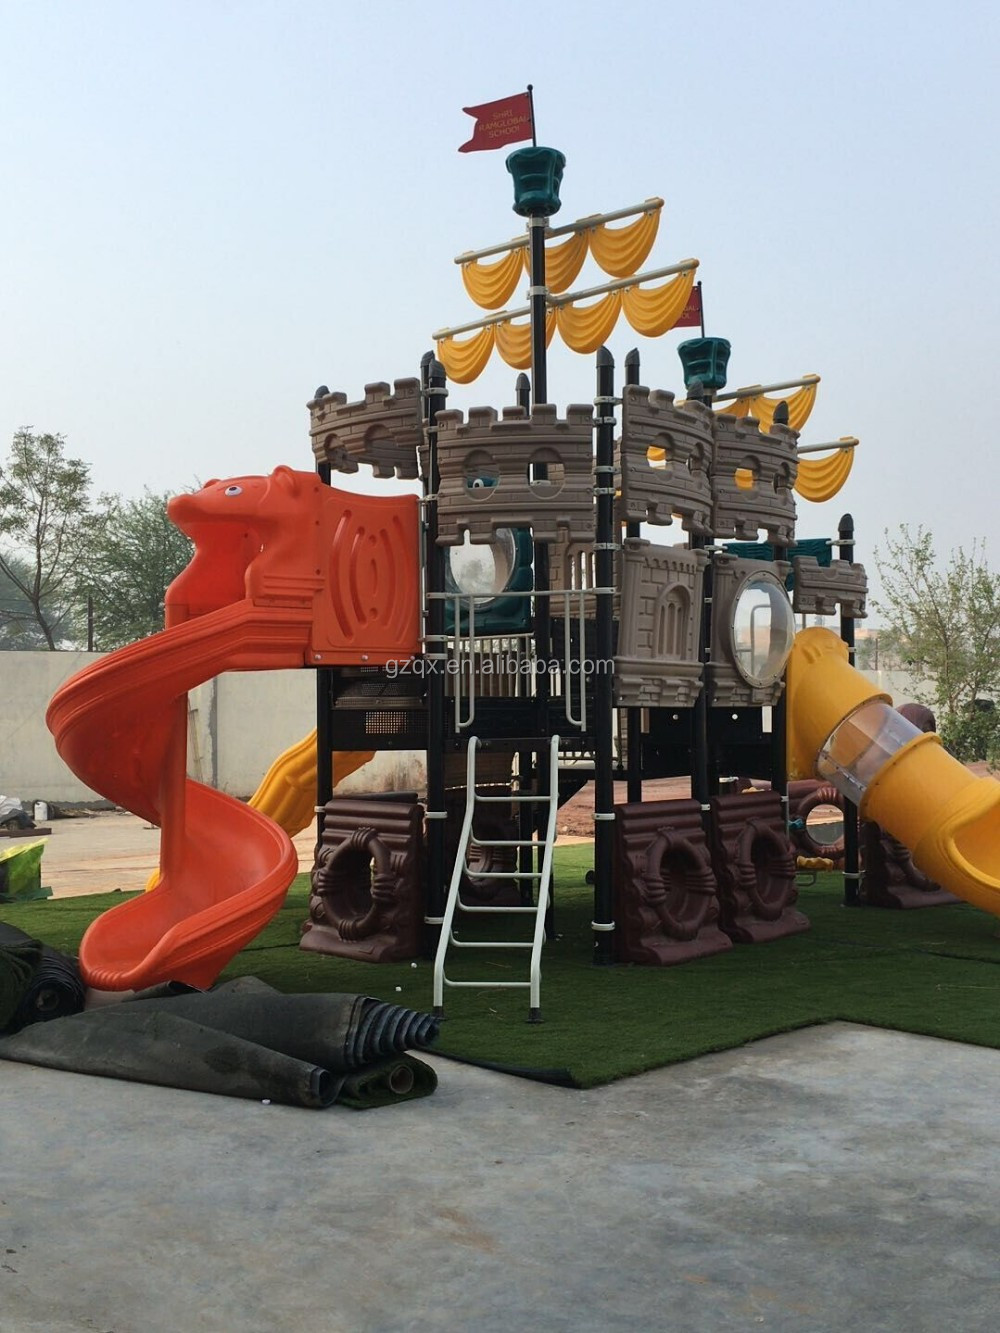 Outdoor design playgrounds play kids playground children outdoor playground toys QX-T004